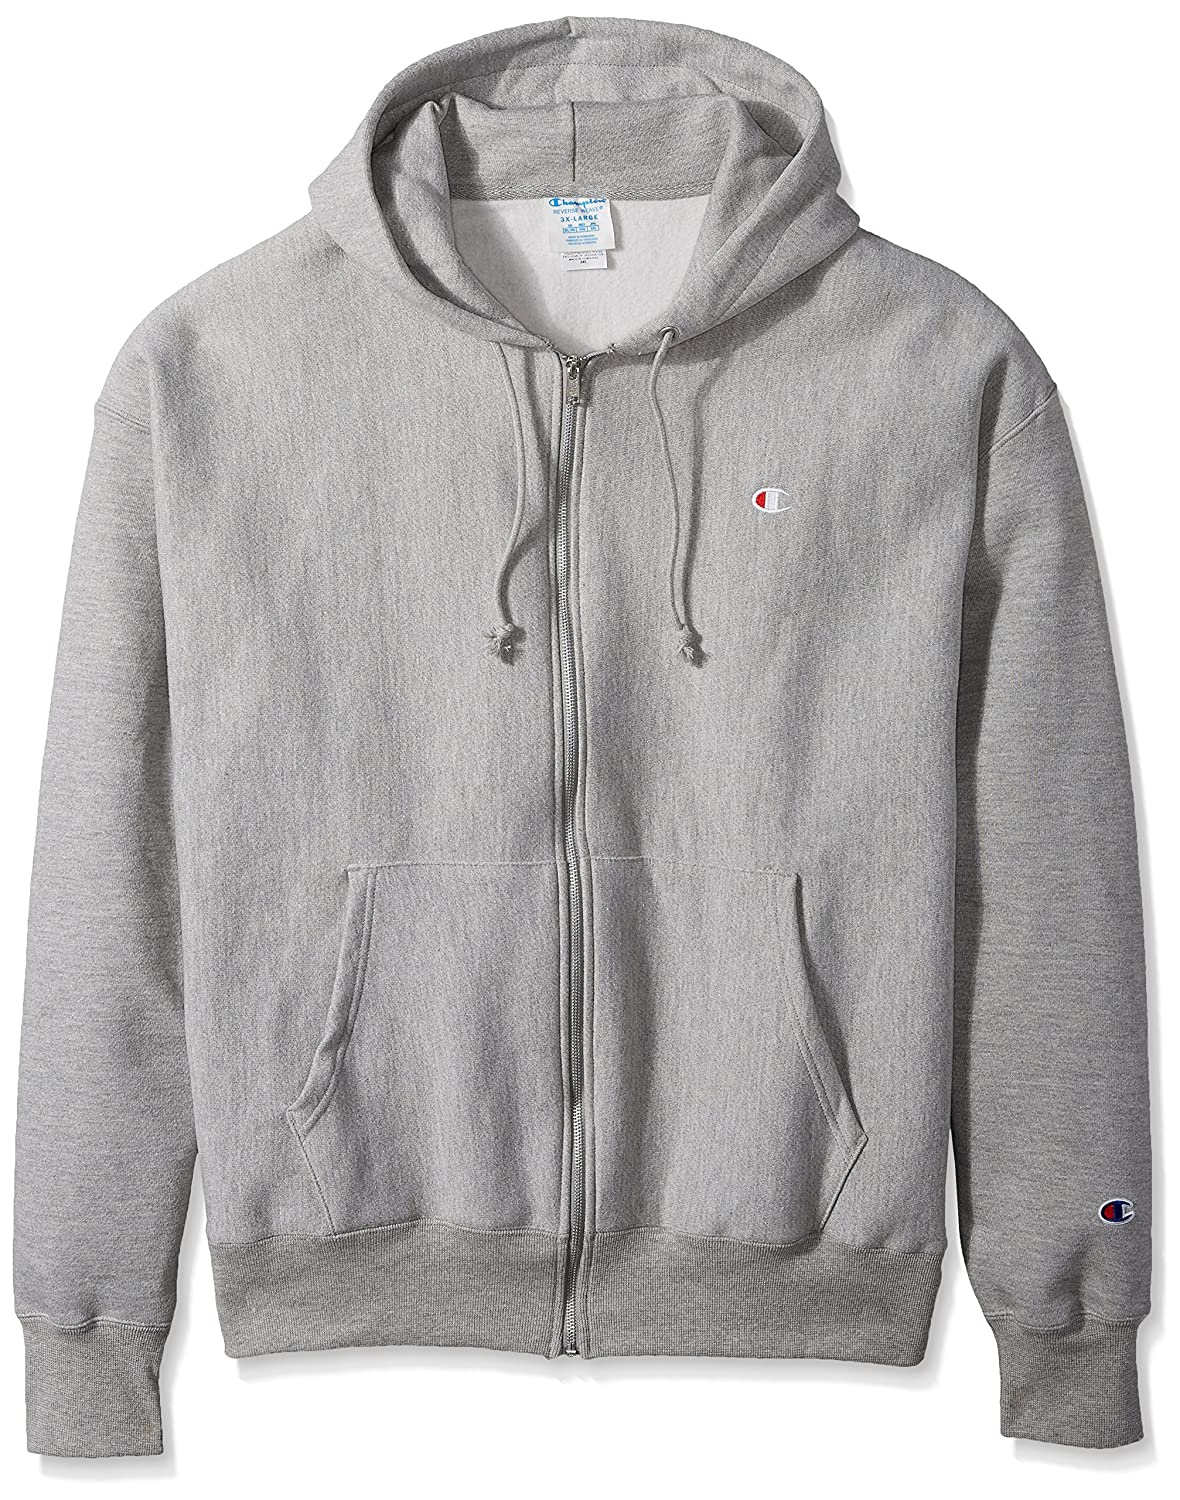 Champion Mens Standard Life Reverse Weave Full-Zip Hoodie Champion Men' s Athletic GF69